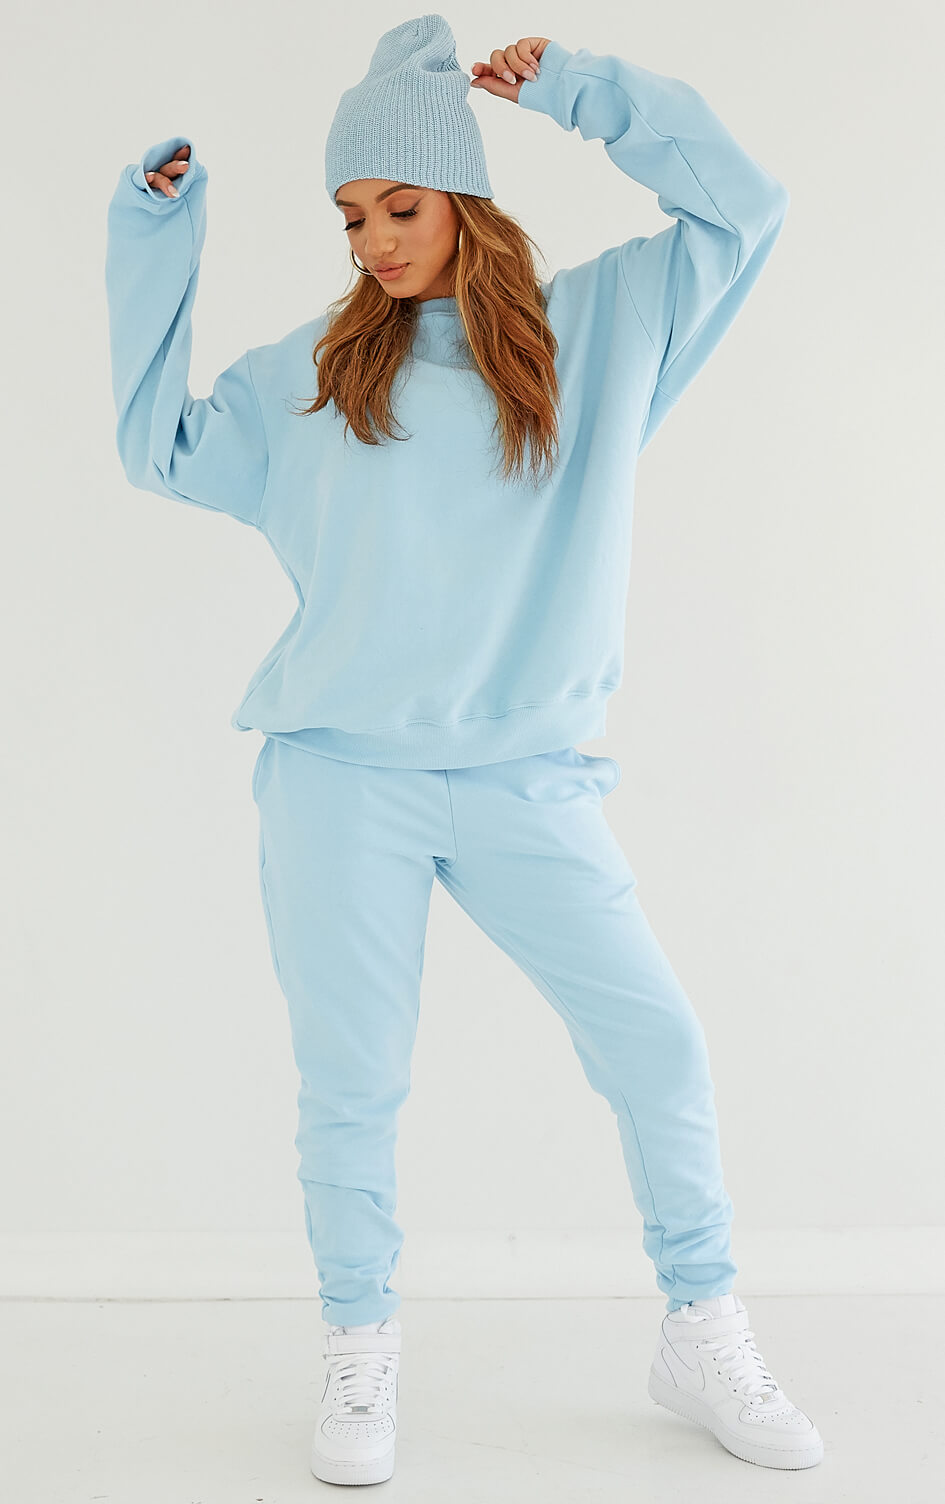 shop-dana-scott-winter-wonderland-cream-carolina-ice-blue-fleece-sweatpant-joggers